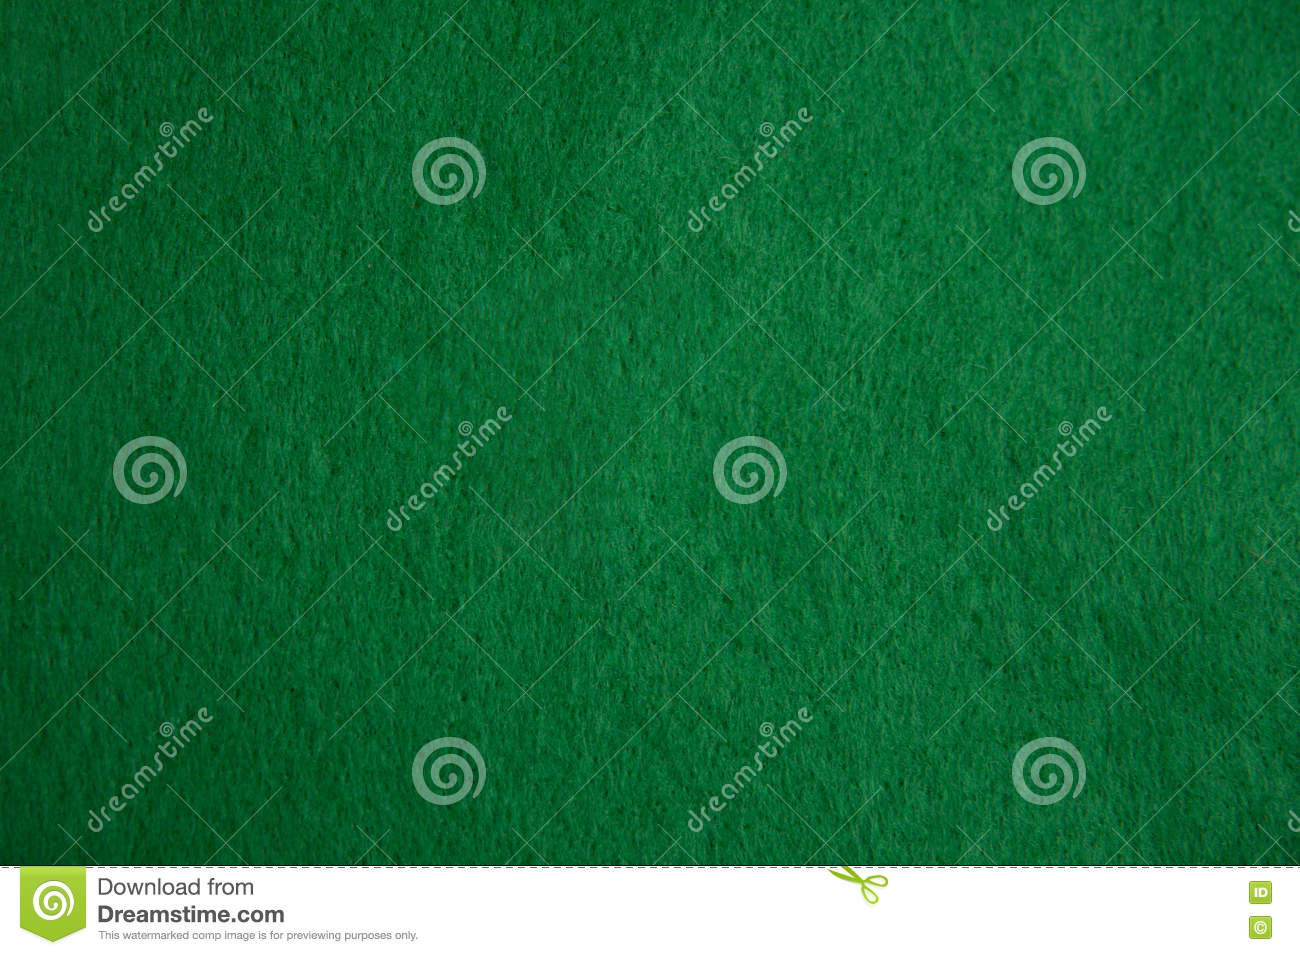 Green Felt Texture Royalty Free Stock Photography